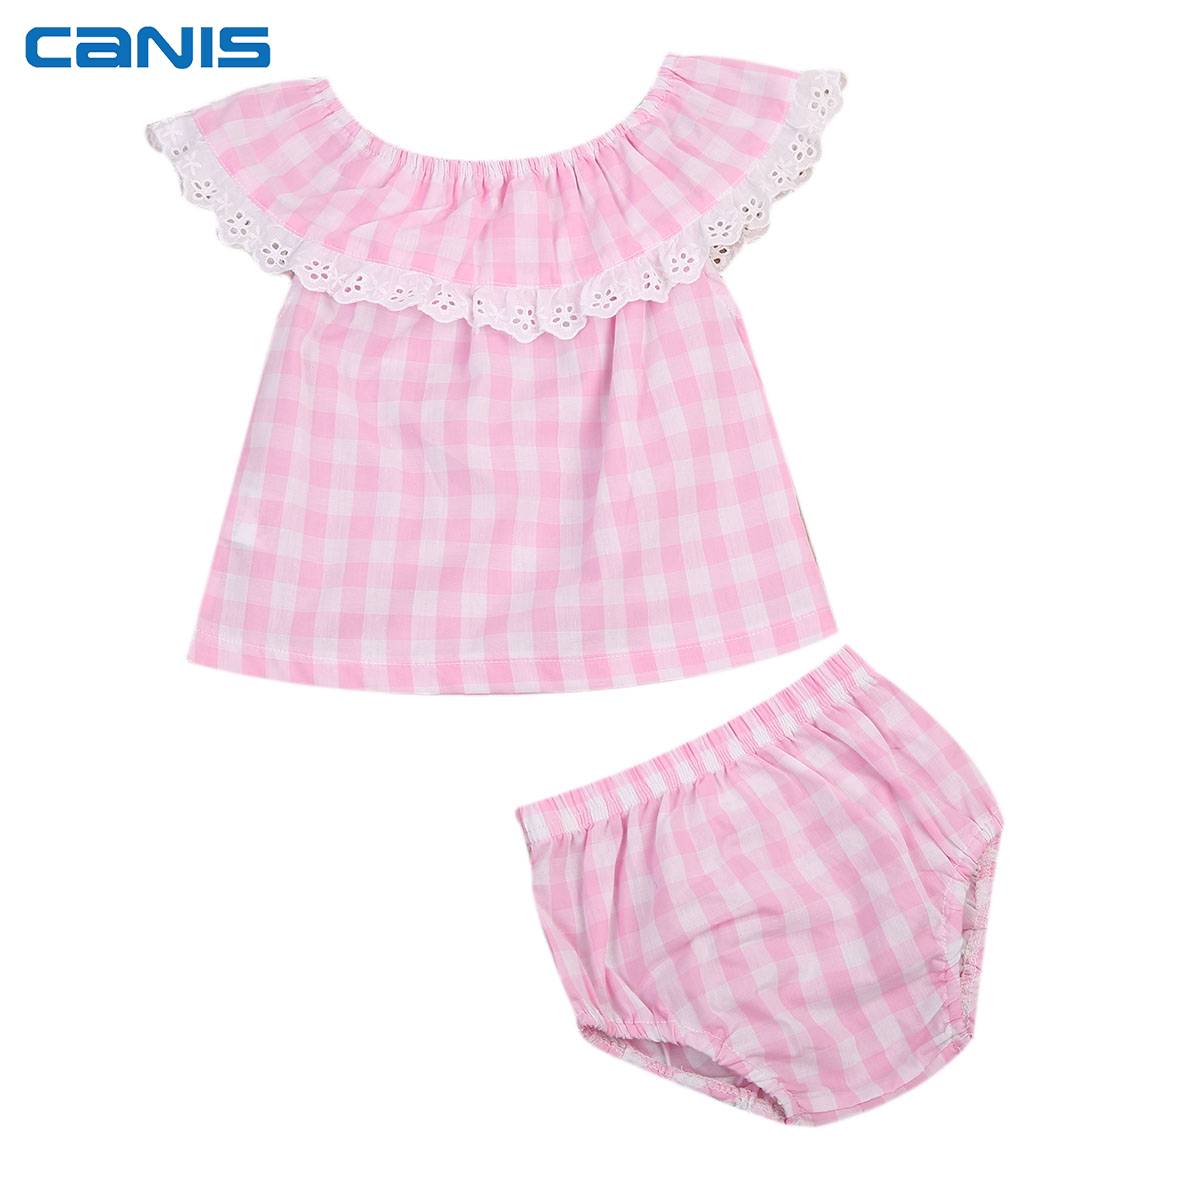 2Pcs Lovely Baby Set Newborn Infant Baby Girls Outfit Strapless T-Shirt Tops Short Pants Leggings Outfits Set Clothes Summer 3pcs set newborn infant baby boy girl clothes 2017 summer short sleeve leopard floral romper bodysuit headband shoes outfits